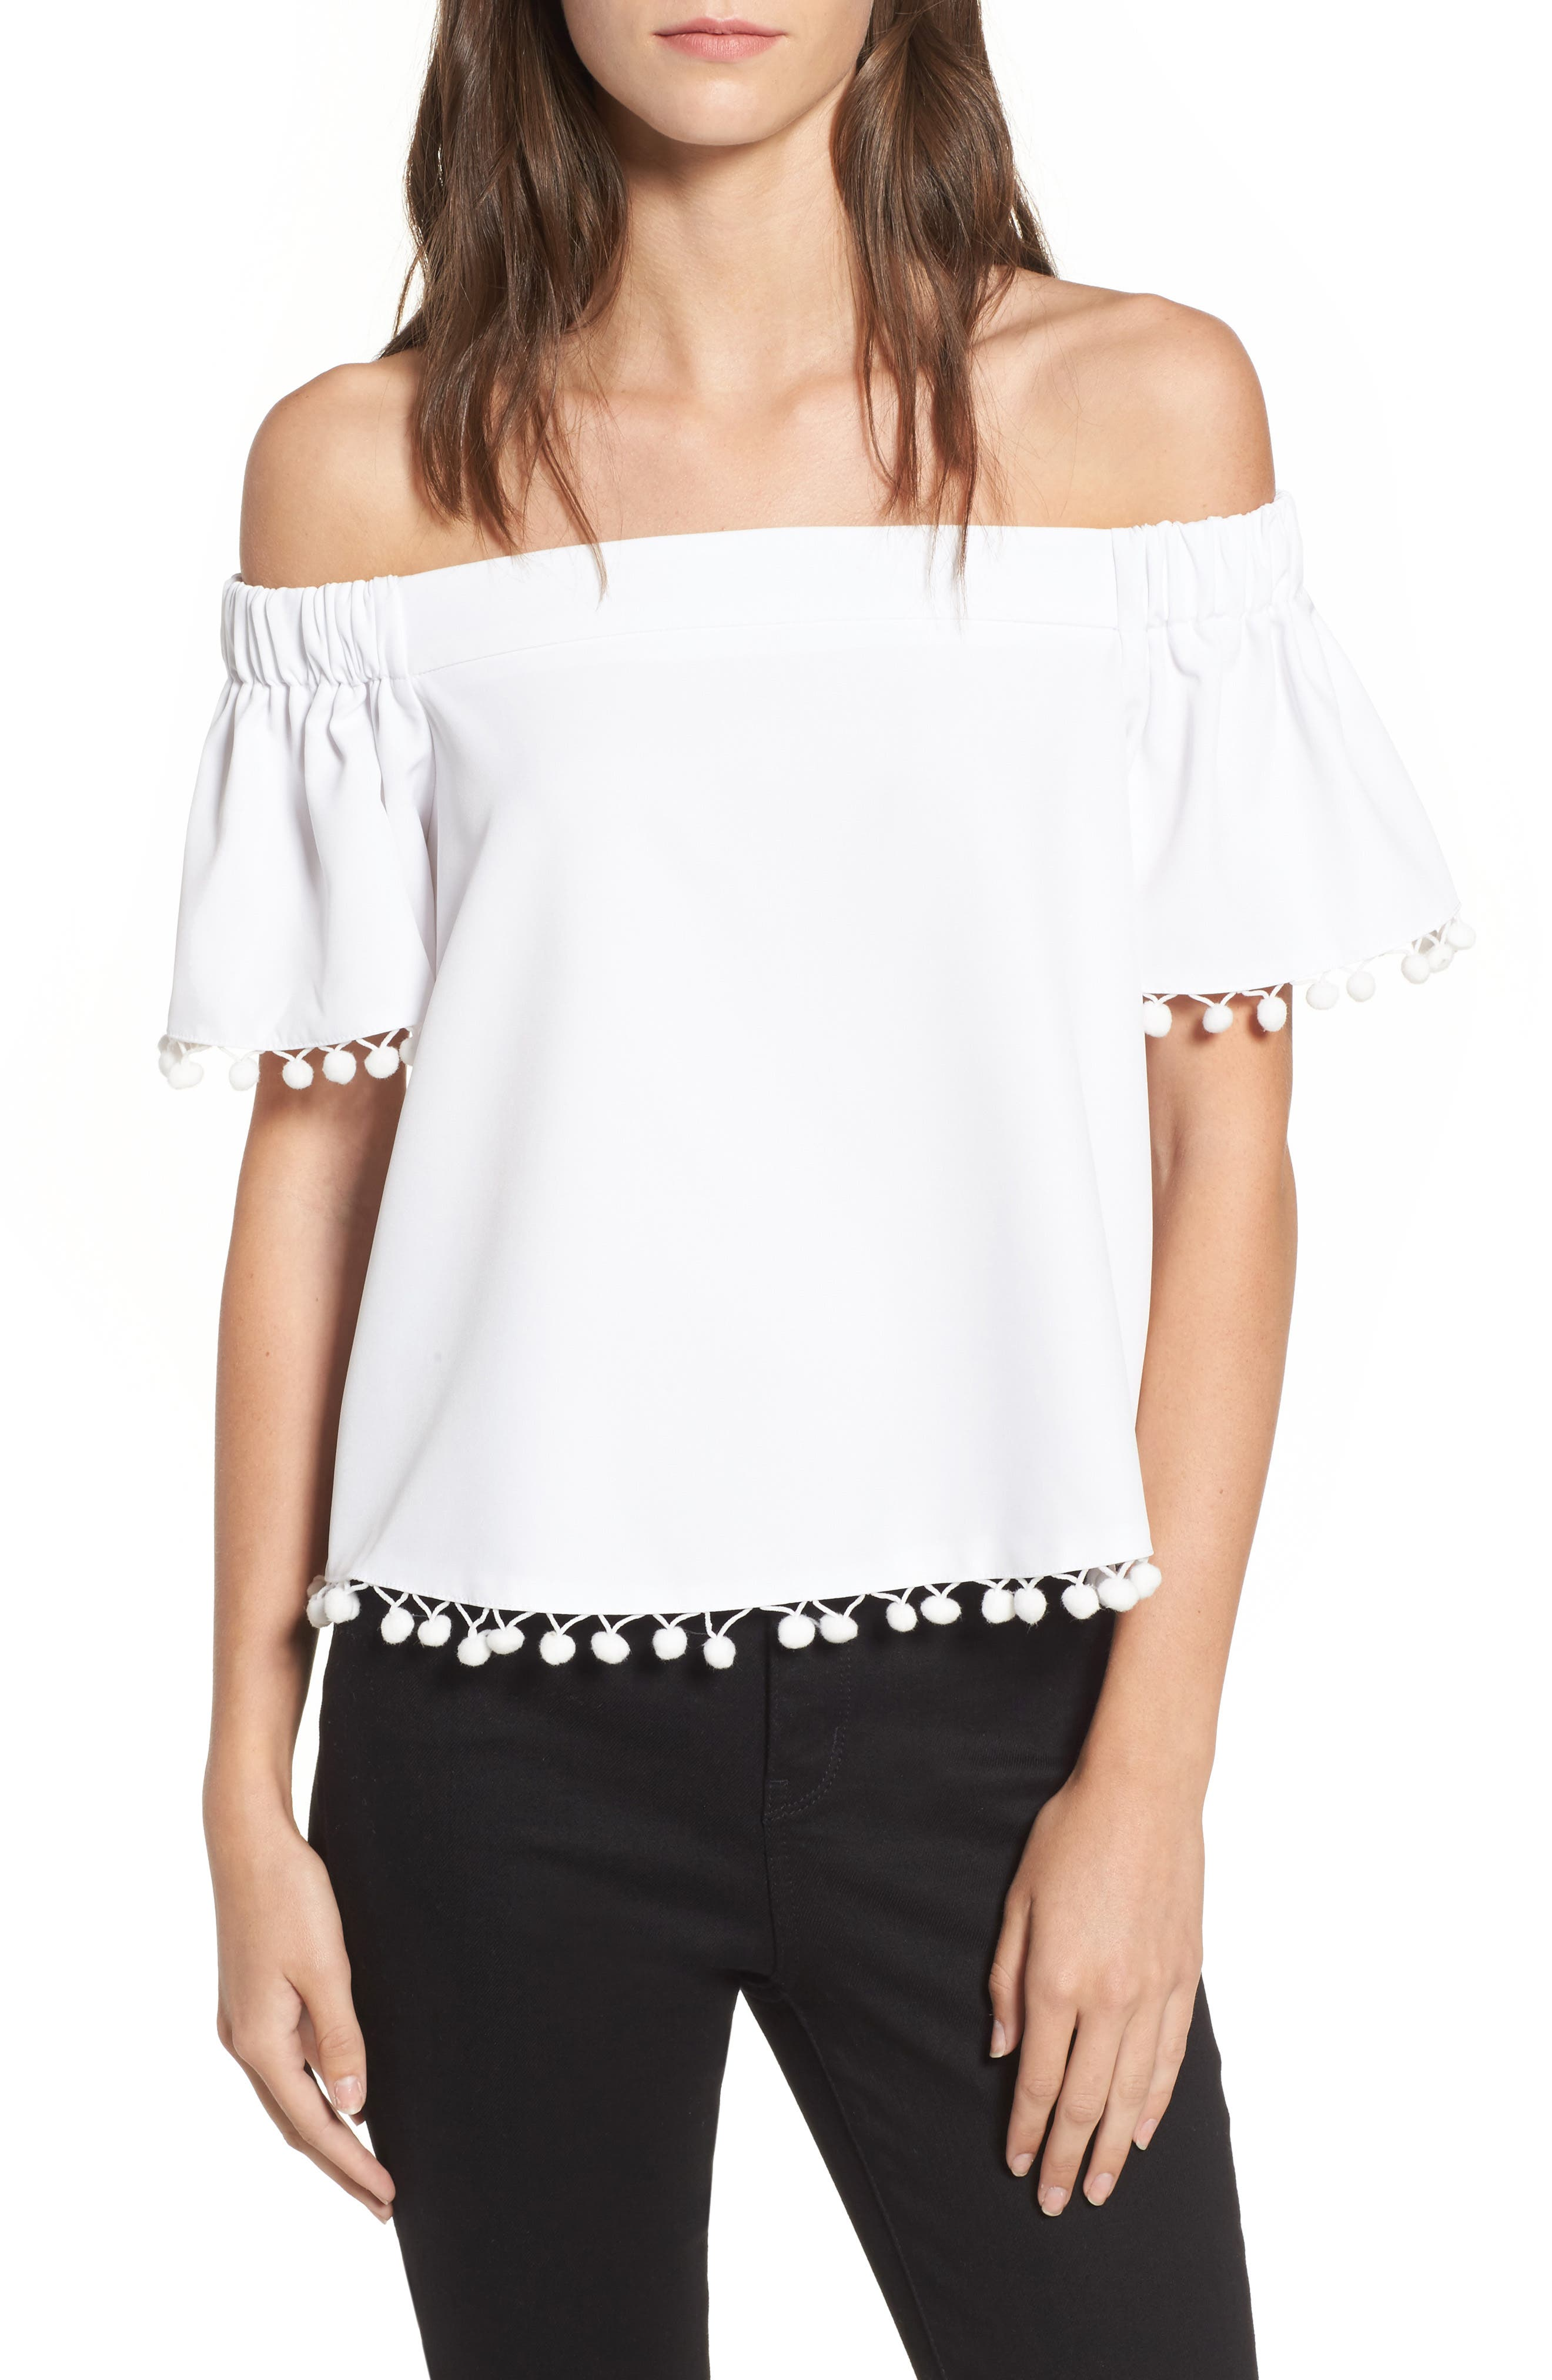 WILLOW & CLAY, Pompom Off the Shoulder Top, Main thumbnail 1, color, 106